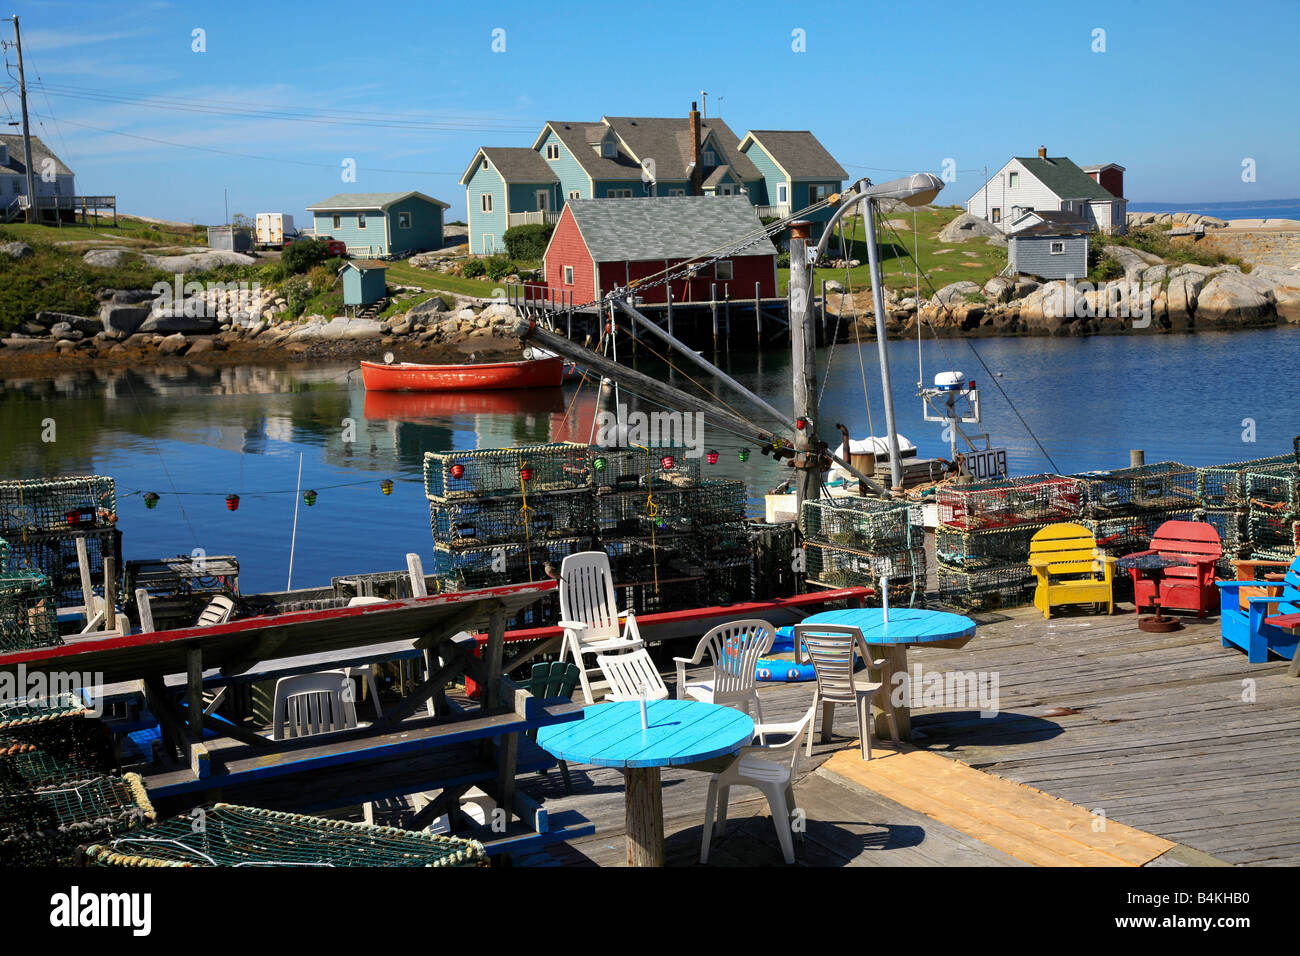 Canada 39 s famous east coast fishing village on the atlantic for East coast fishing